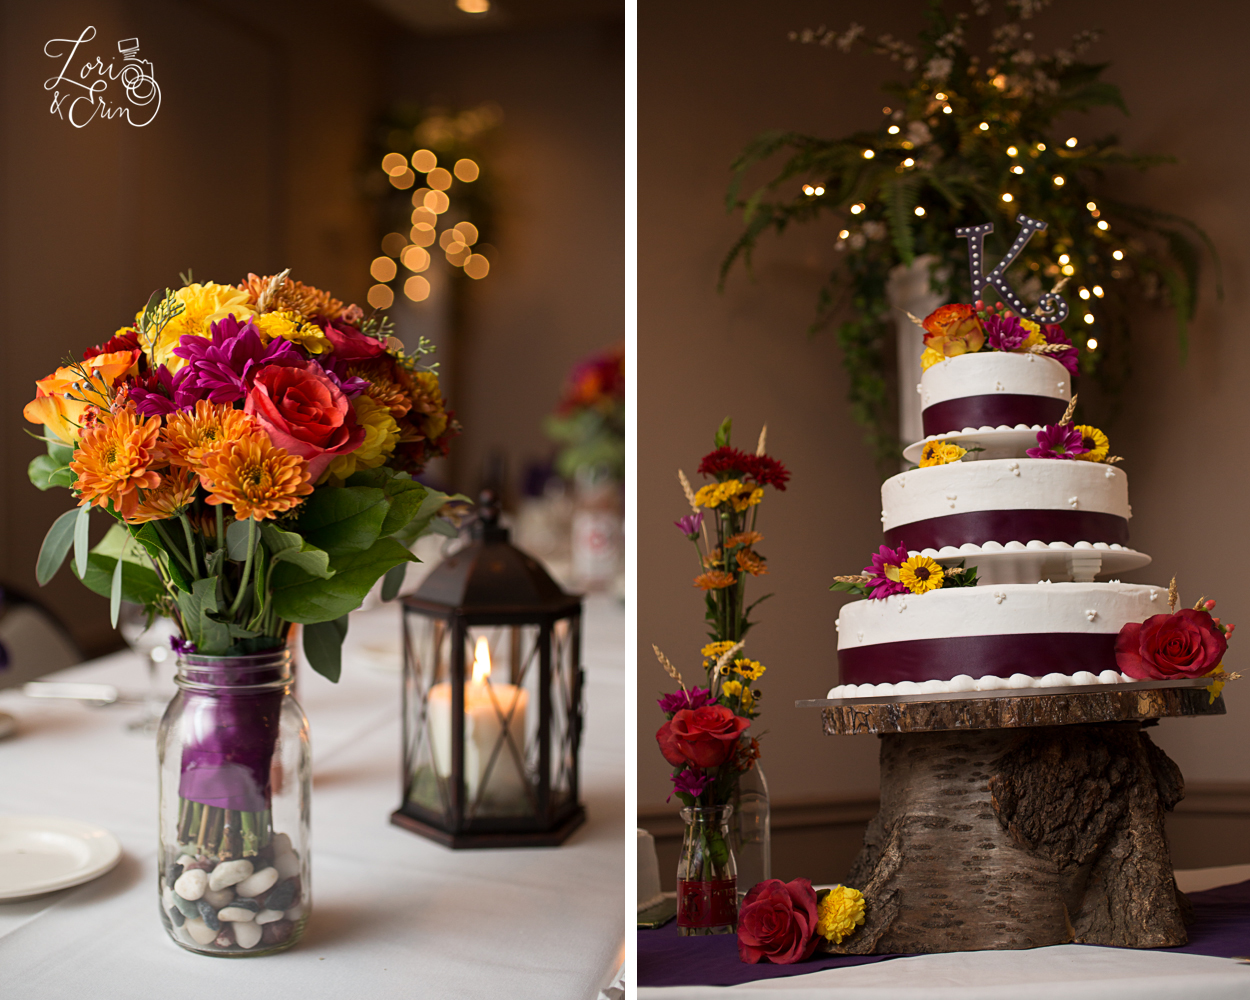 Whittier Party House, Rochester NY Wedding Photography